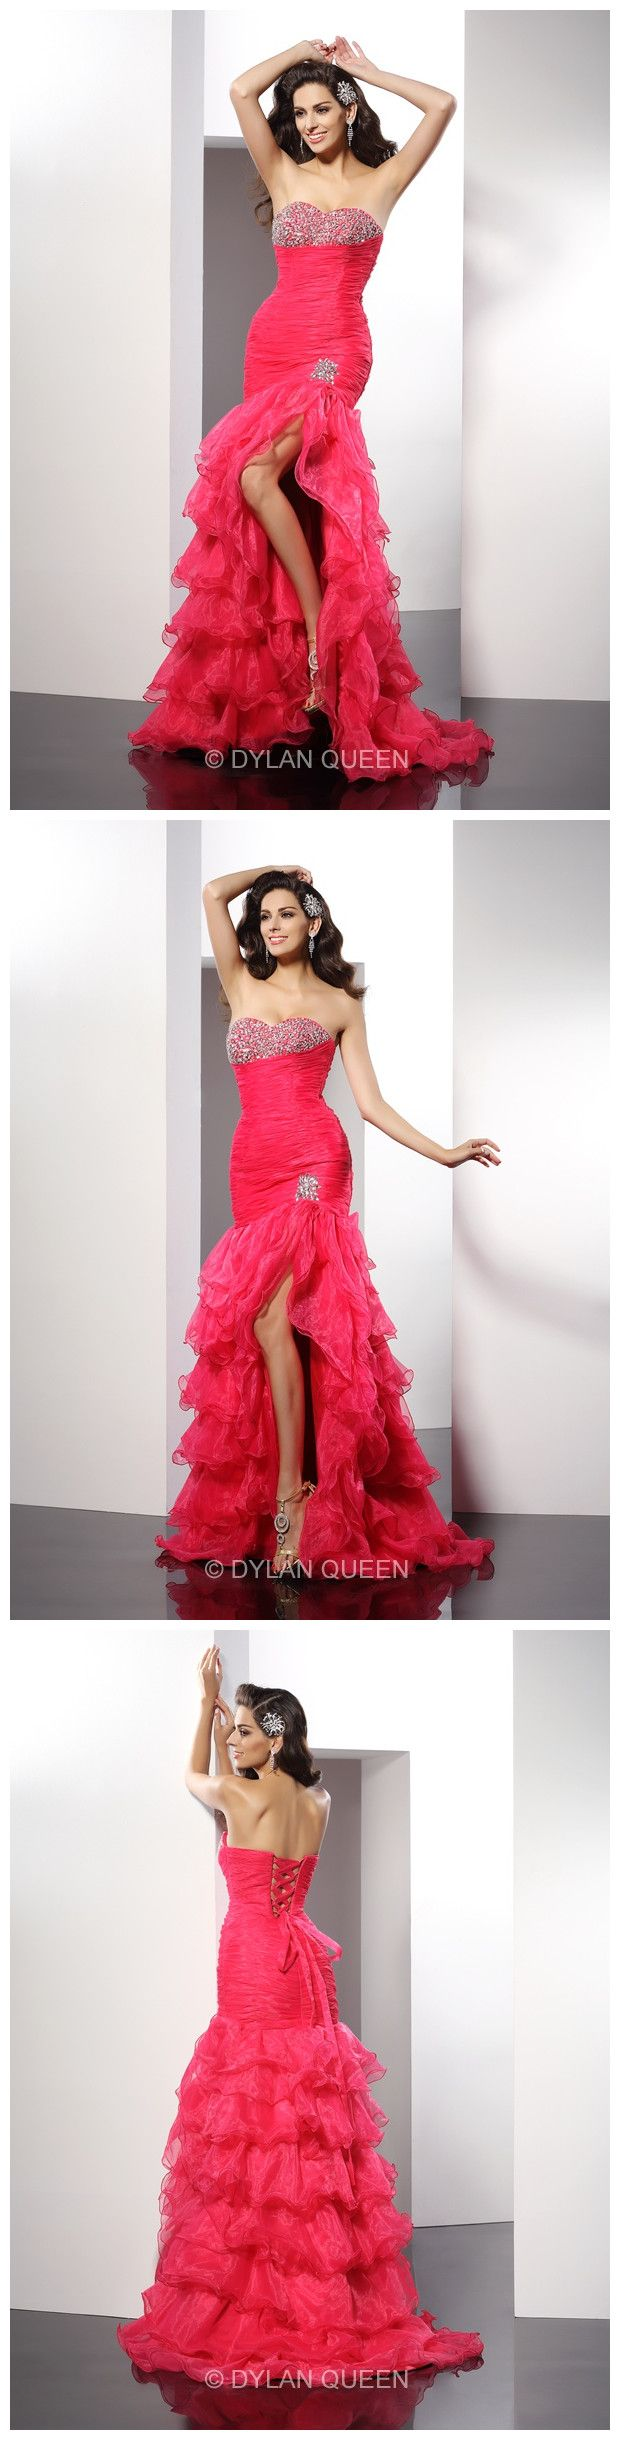 When I See The Dress I Want Dress It To Dance Dance Share More Gorgeous Fashion Stylish Nice Prom Dress On Prom Dresses 2016 Dresses Cheap Prom Dresses